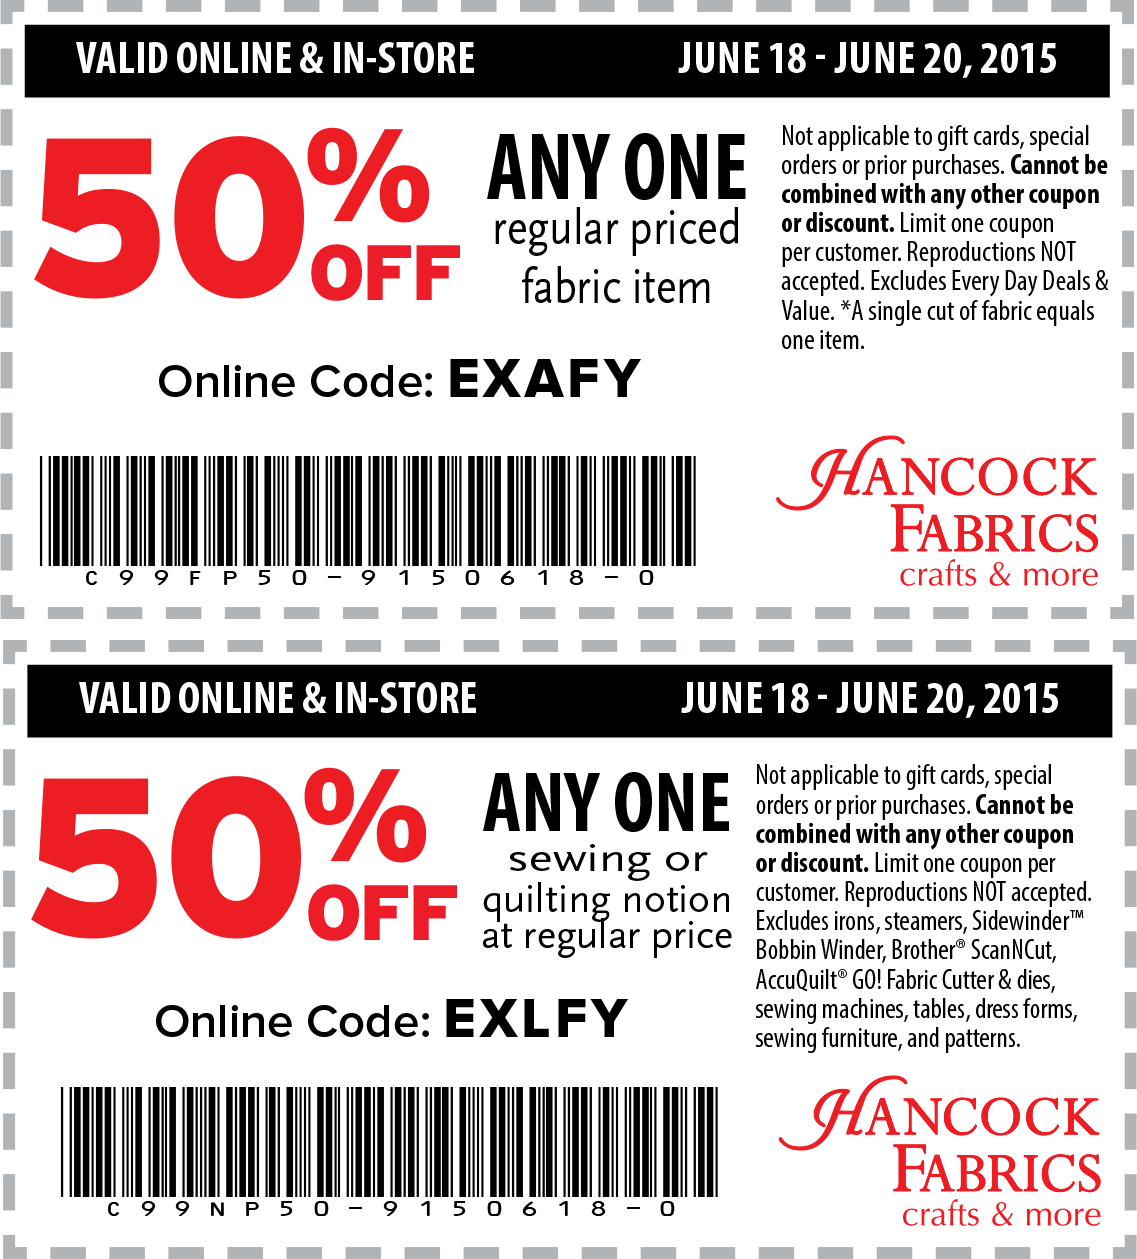 Hancock Fabrics Coupon November 2017 50% off a single item at Hancock Fabrics, or online via promo code EXAFY